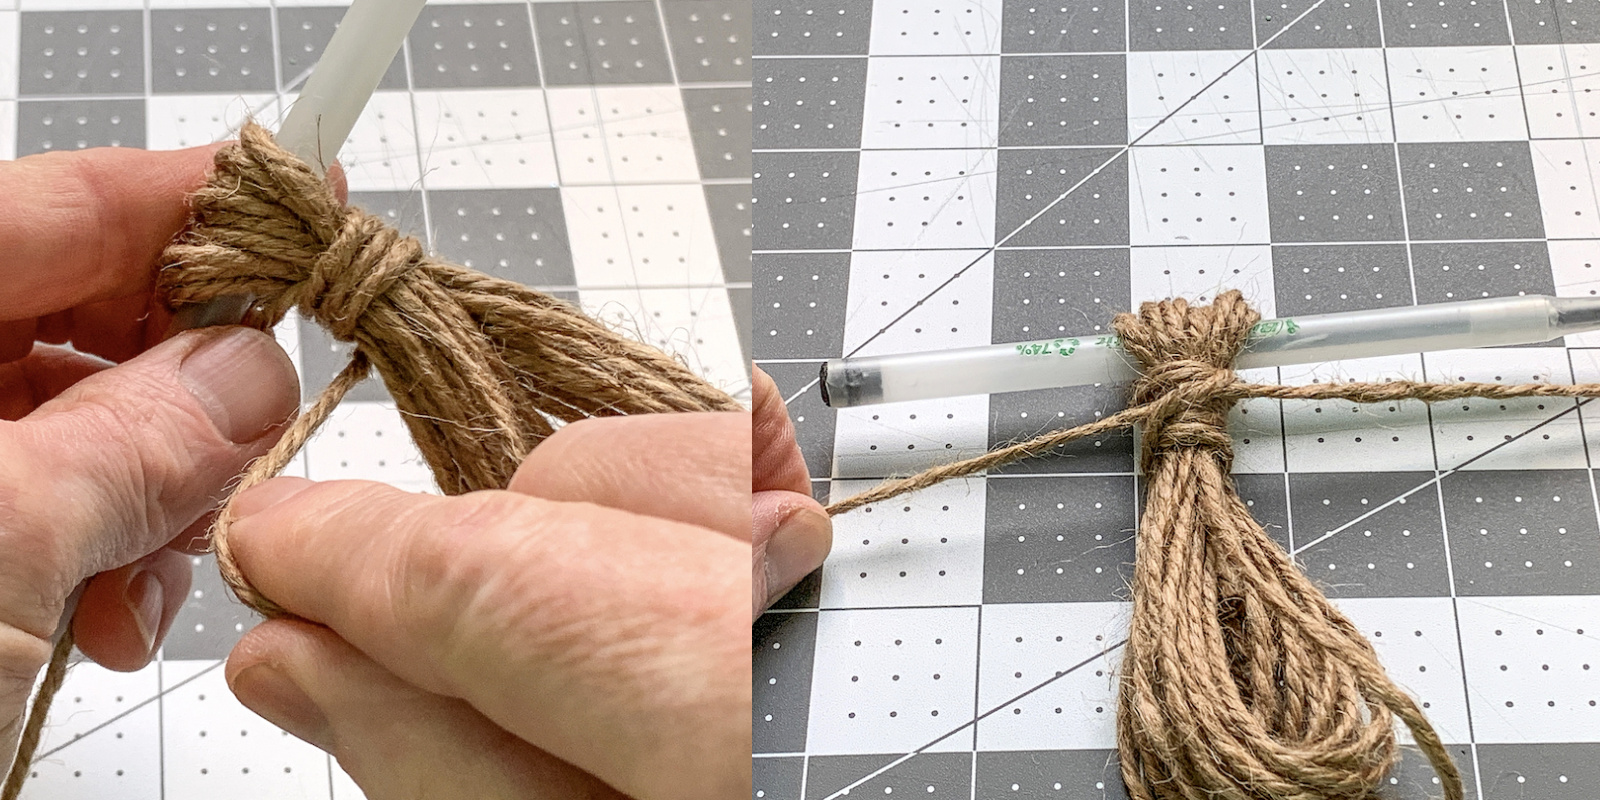 Wrapping twine around a tassel and tying a knot